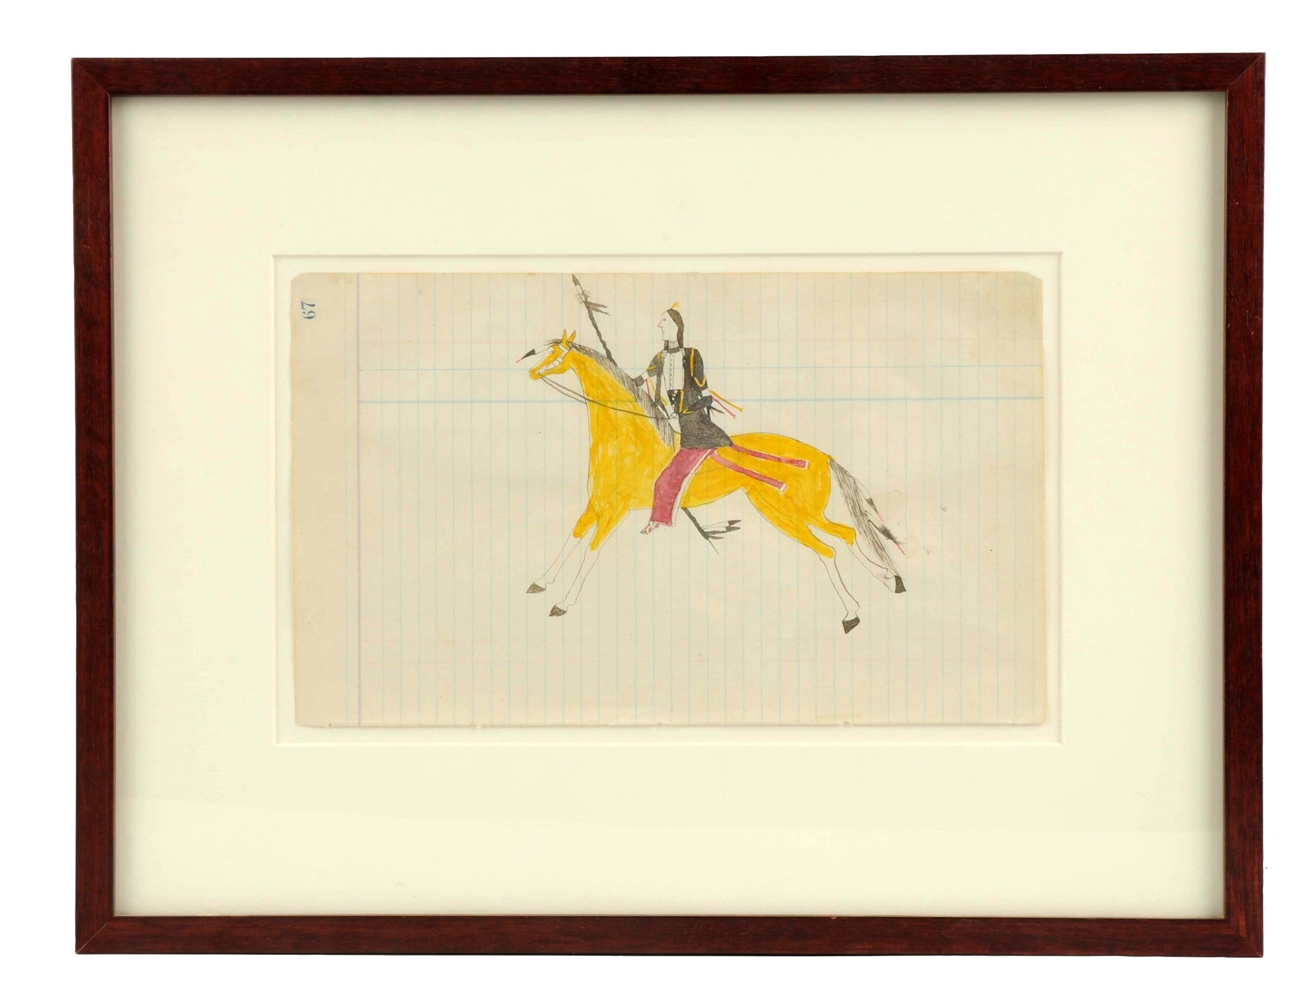 Roan Eagle Ledger Drawing In Frame.